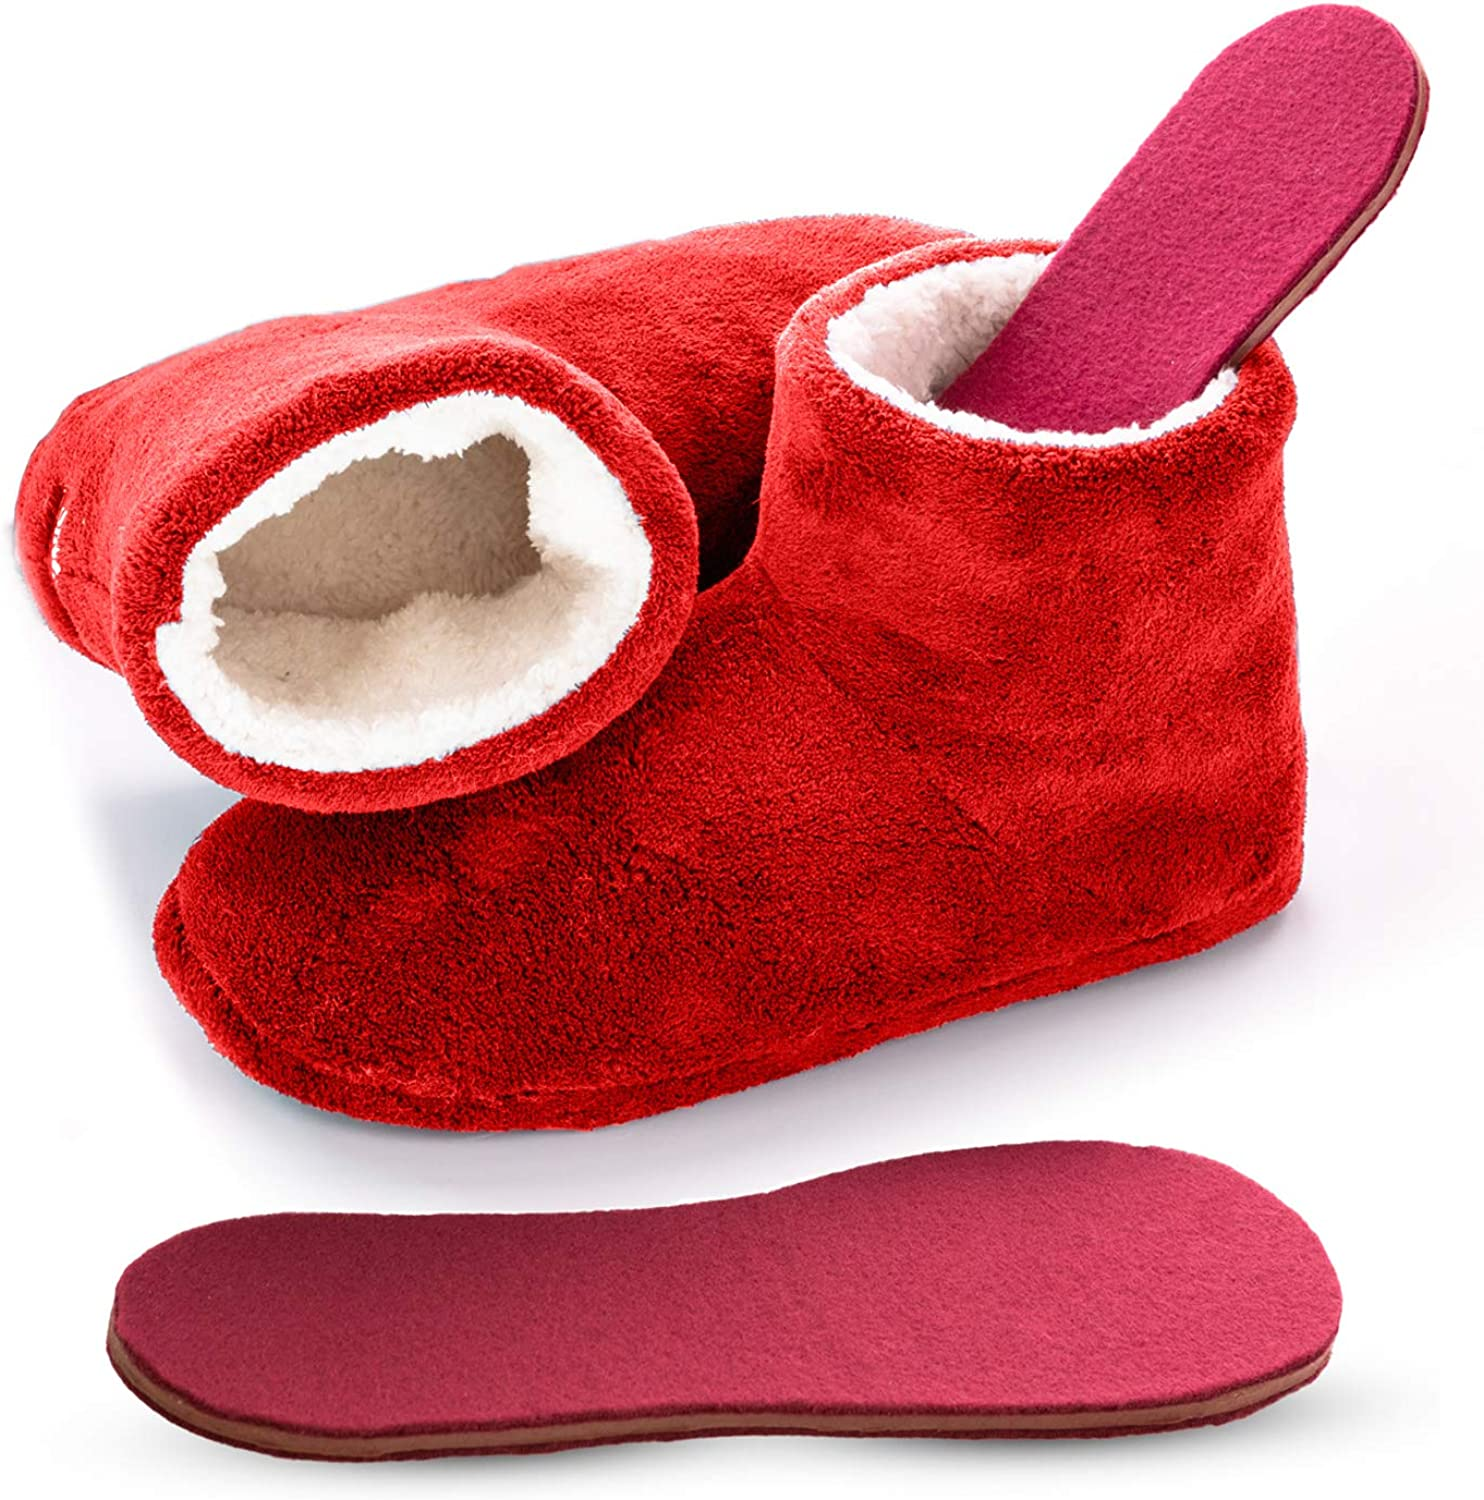 Snook-Ease Microwavable Heated Slippers Feet Warmers Booties with Heated Insole Inserts for Instantly Warm Feet - Reusable Reheatable Washable - Promotes Good Night's Sleep